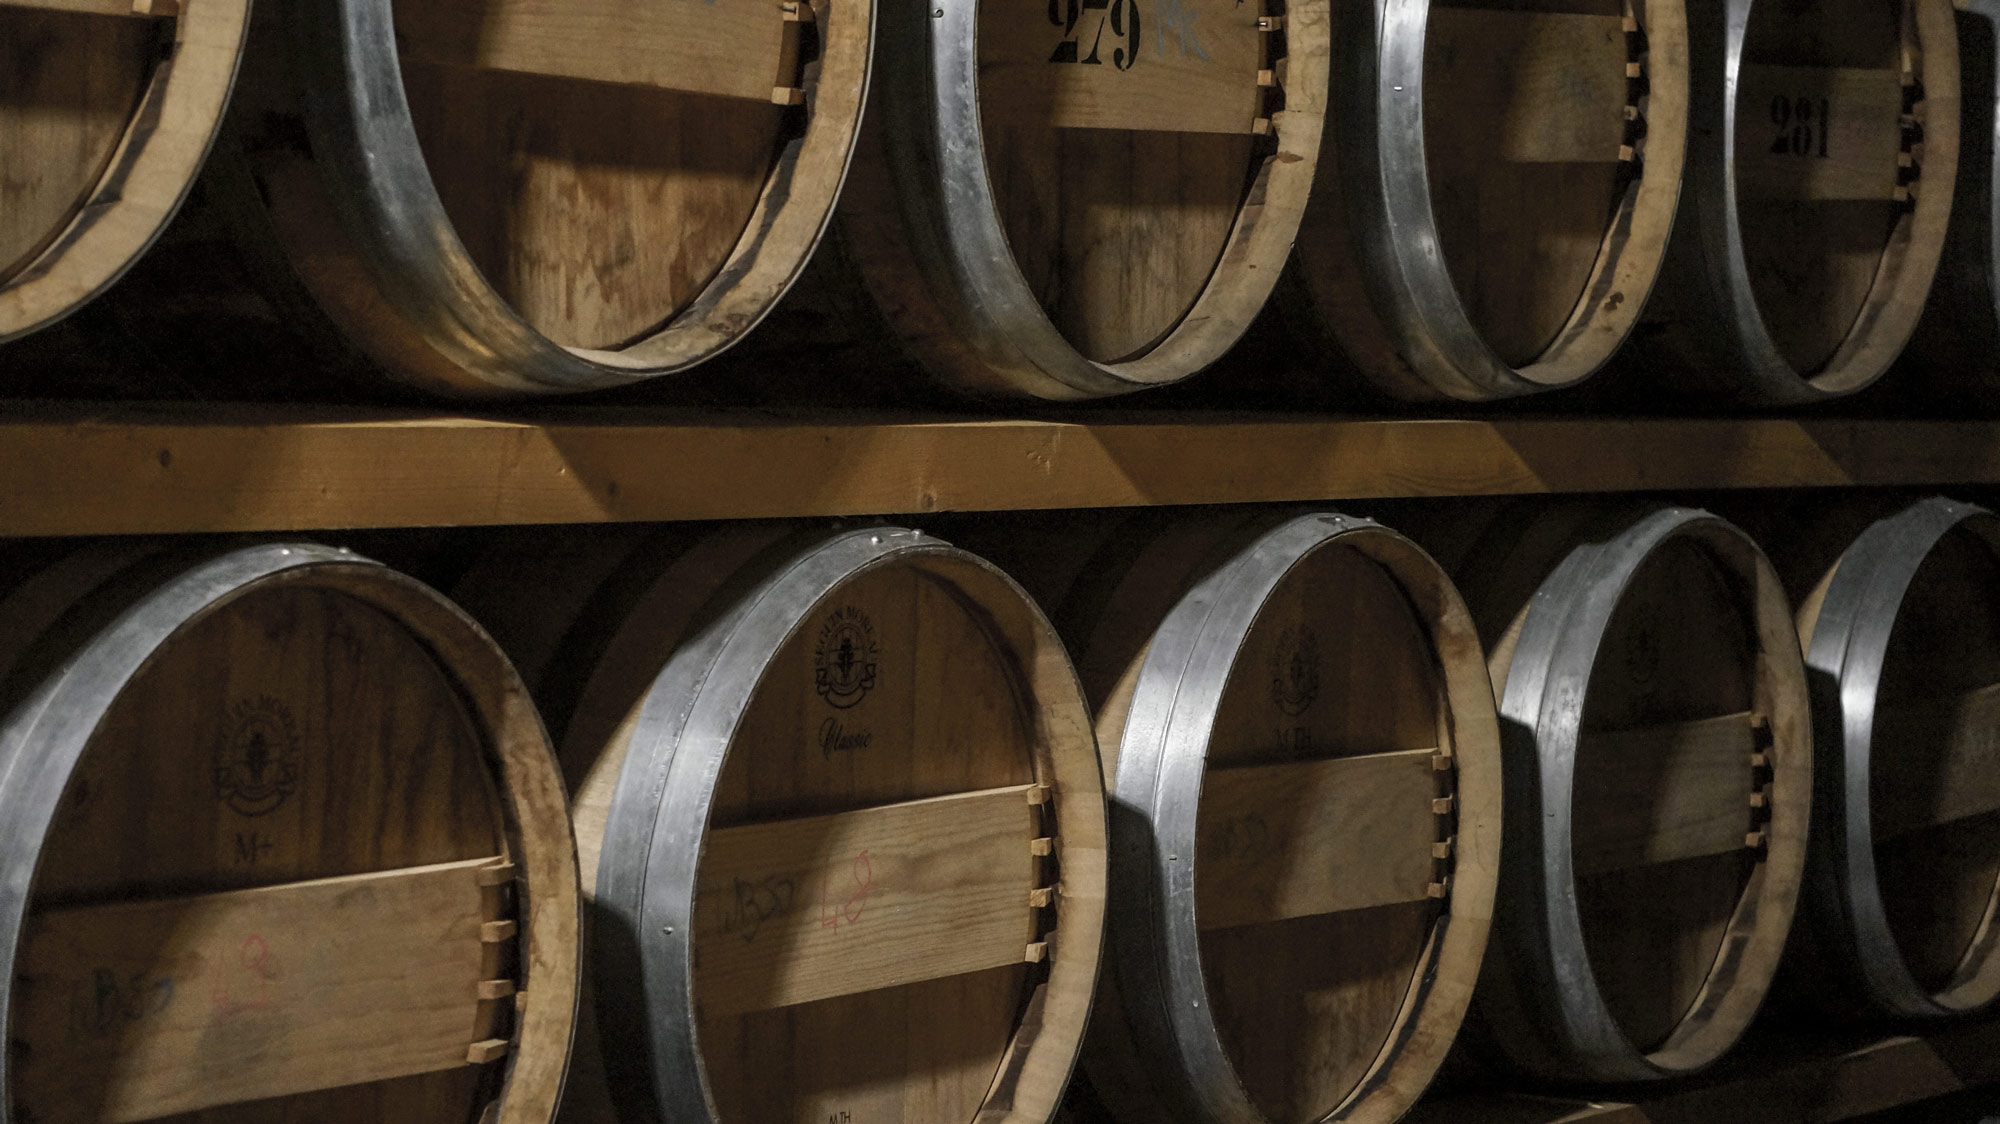 Whiskey reveals its aromas in Mavela barrels